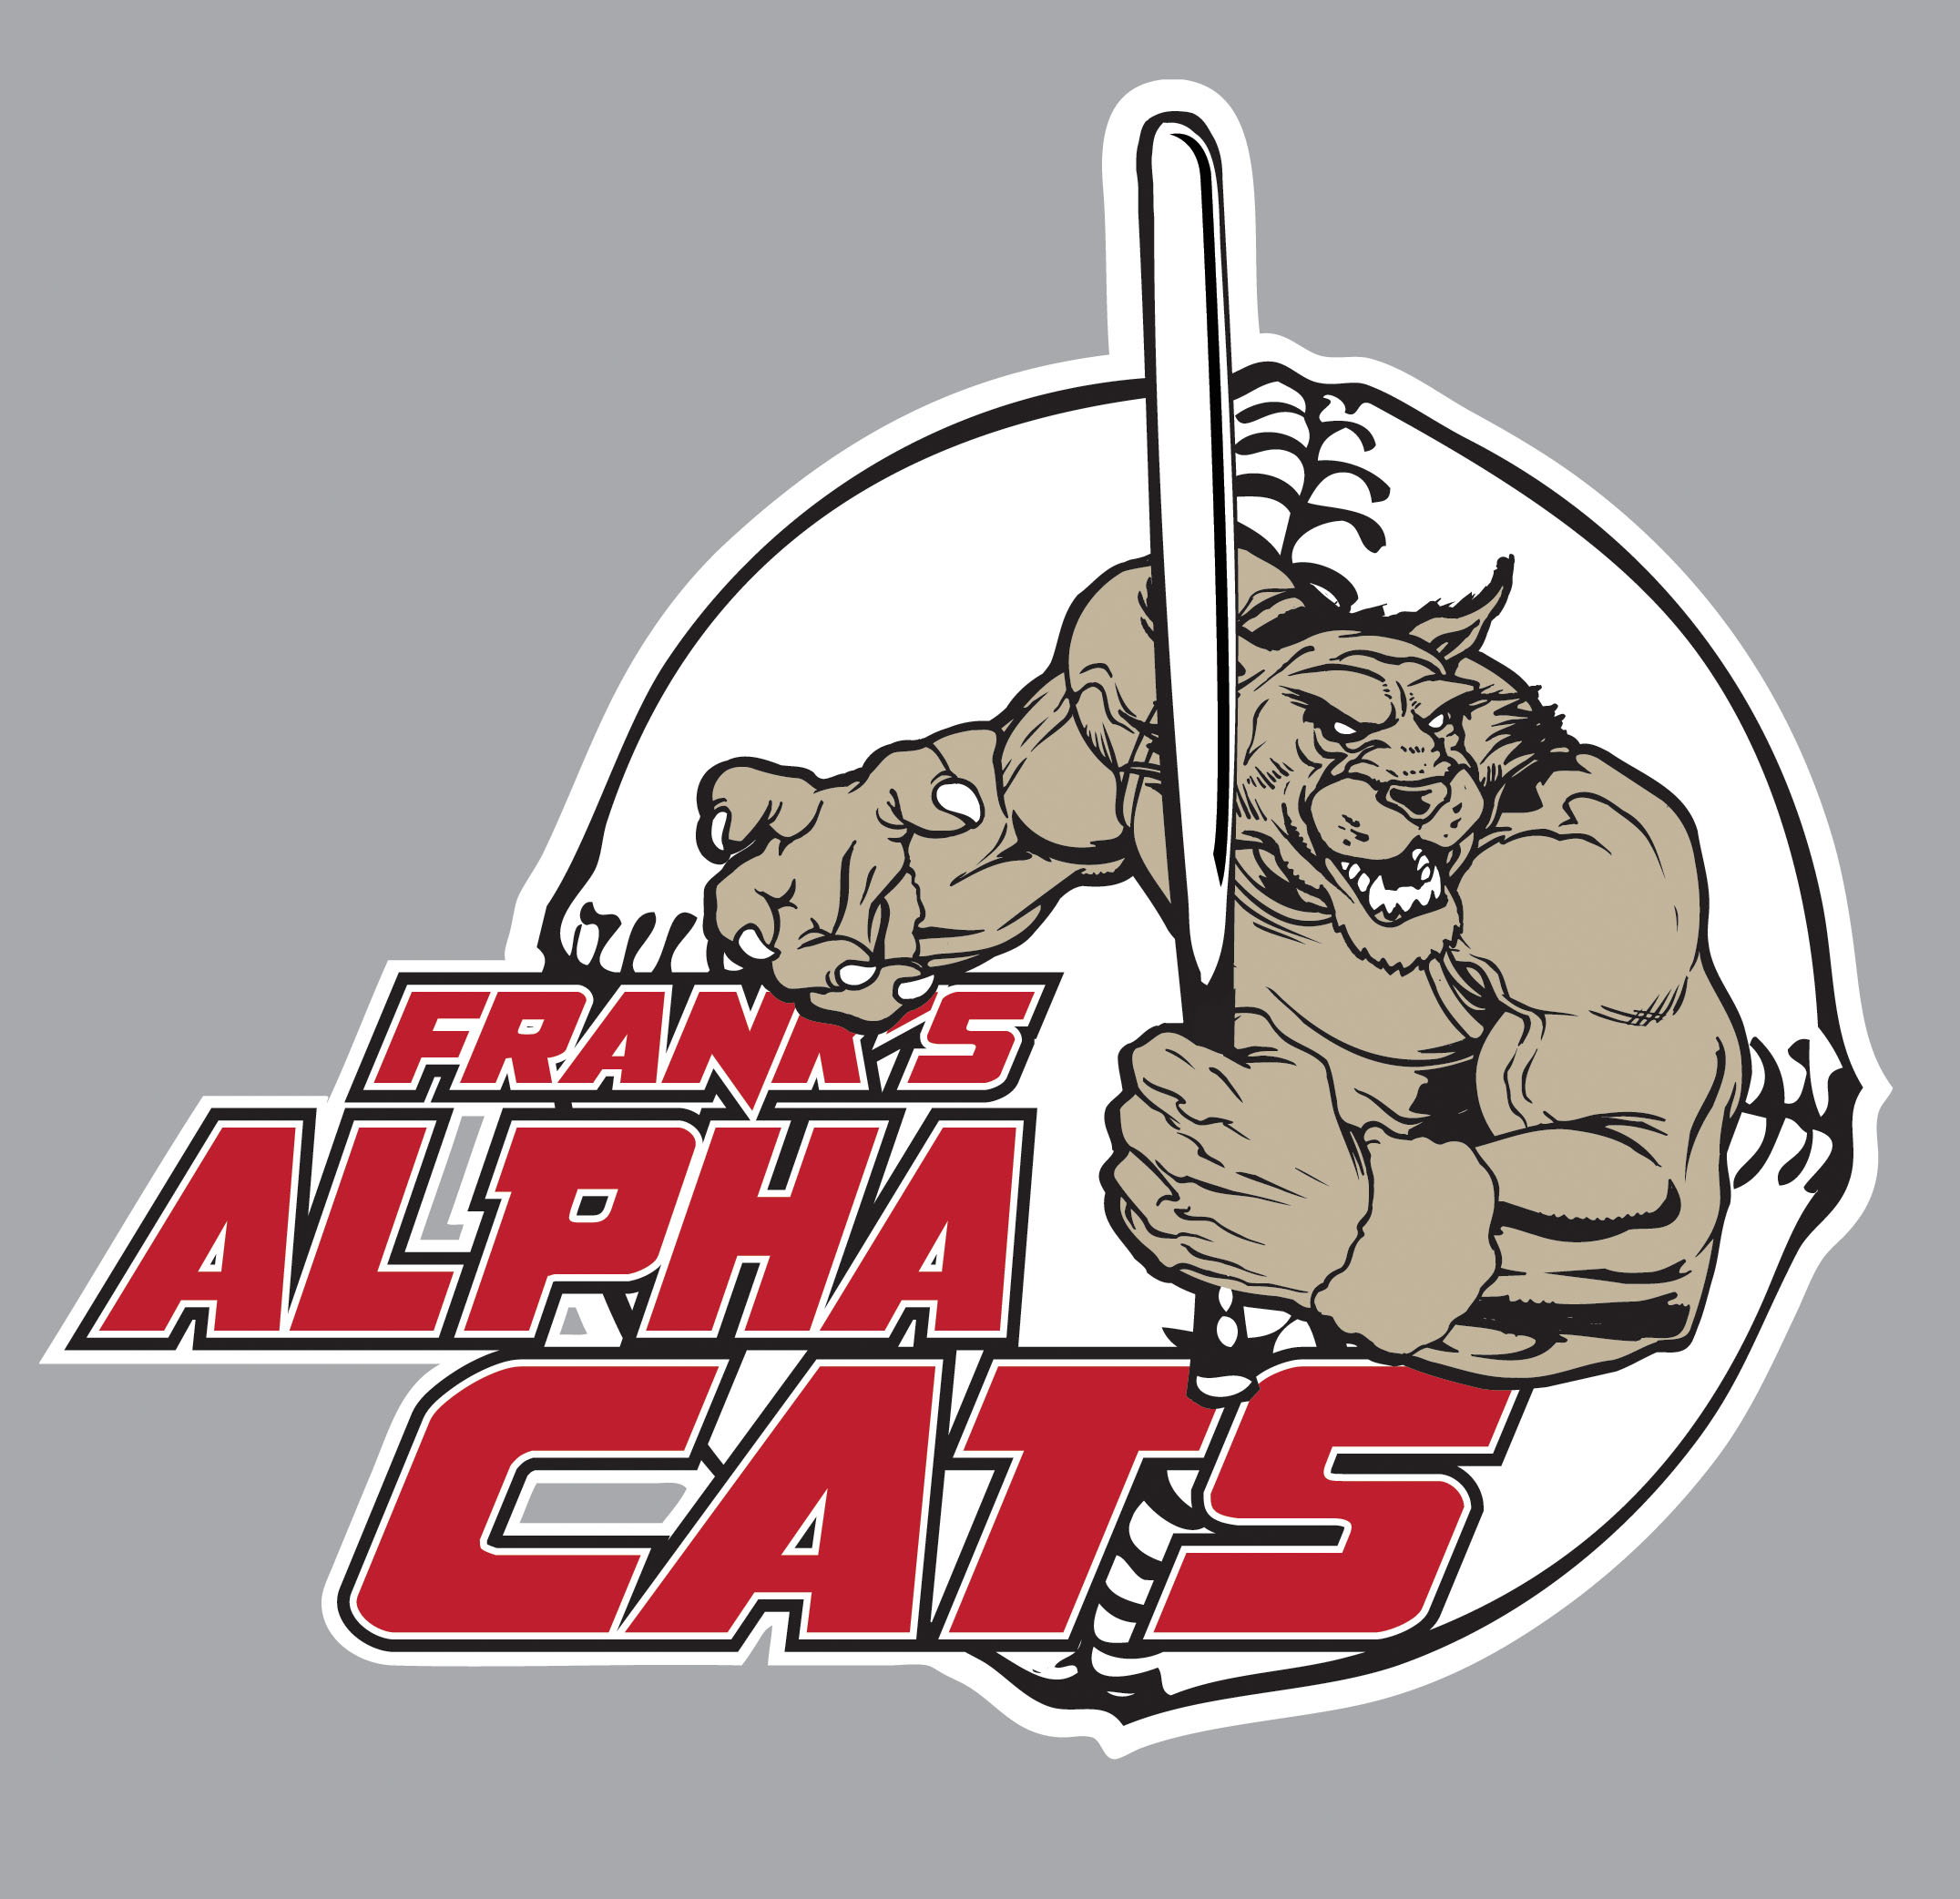 franks-alpha-cats5a.jpg